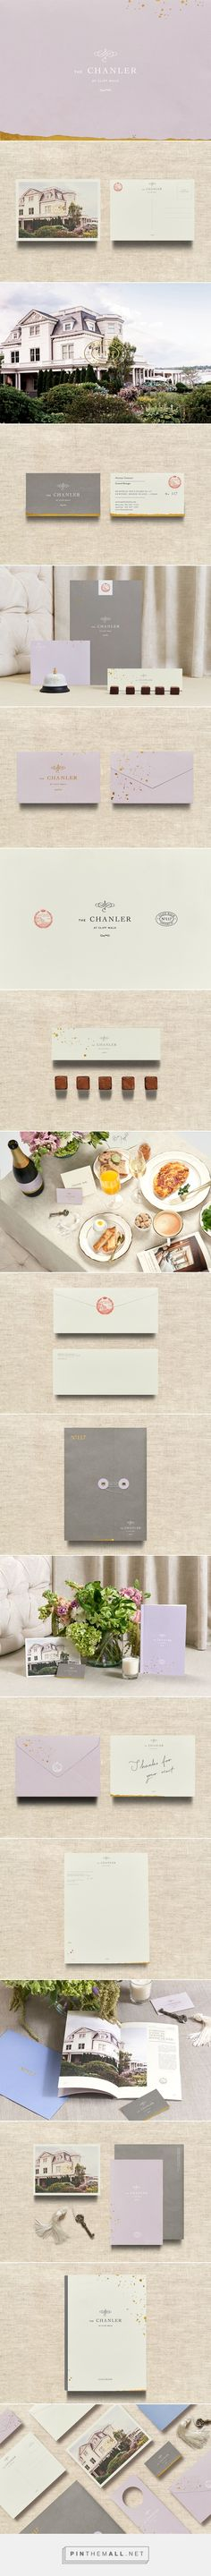 The Chanler Hotel Branding by Anagrama Studio | Fivestar Branding Agency – Design and Branding Agency & Curated Inspiration Gallery